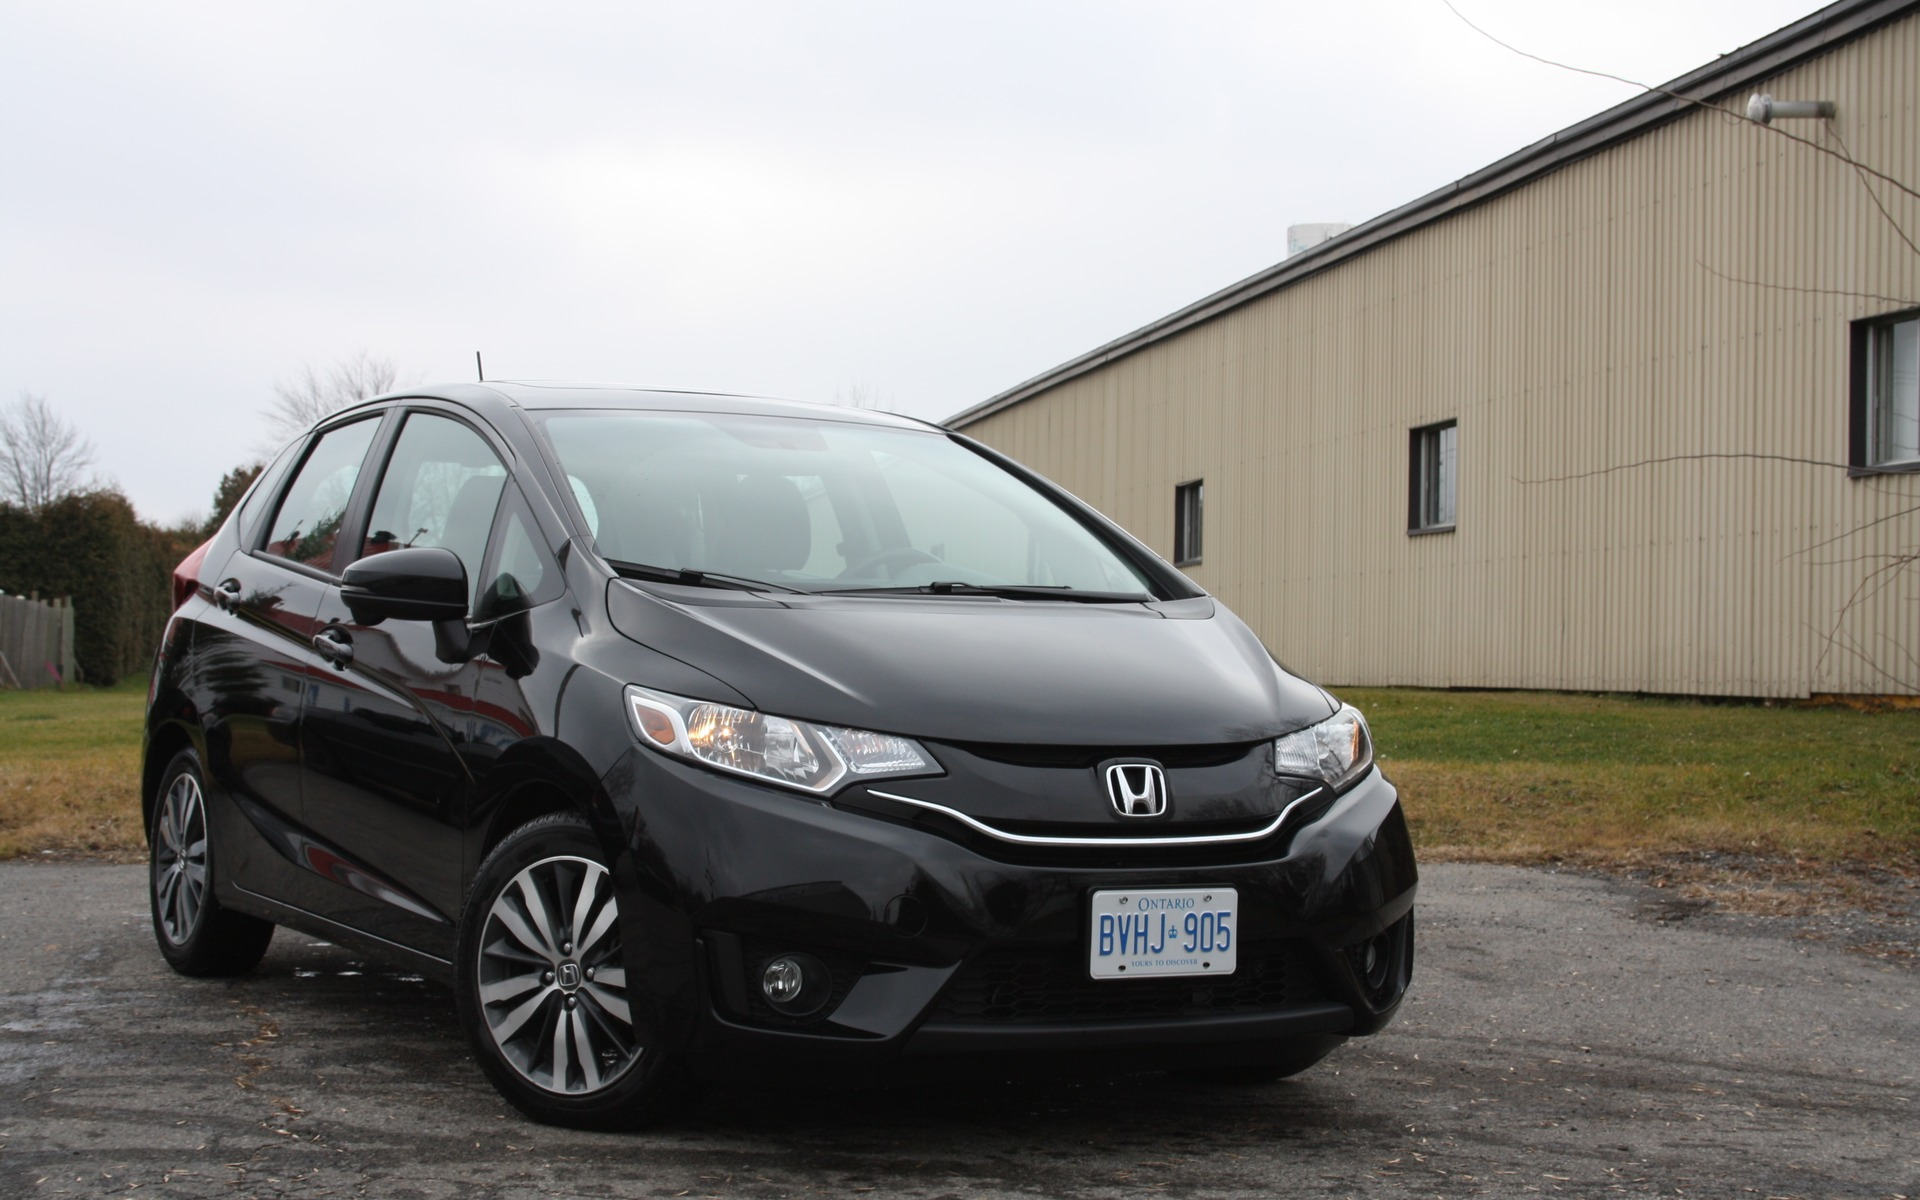 gallery autoevolution photo in honda kicked photos have news shuttle sales japan off